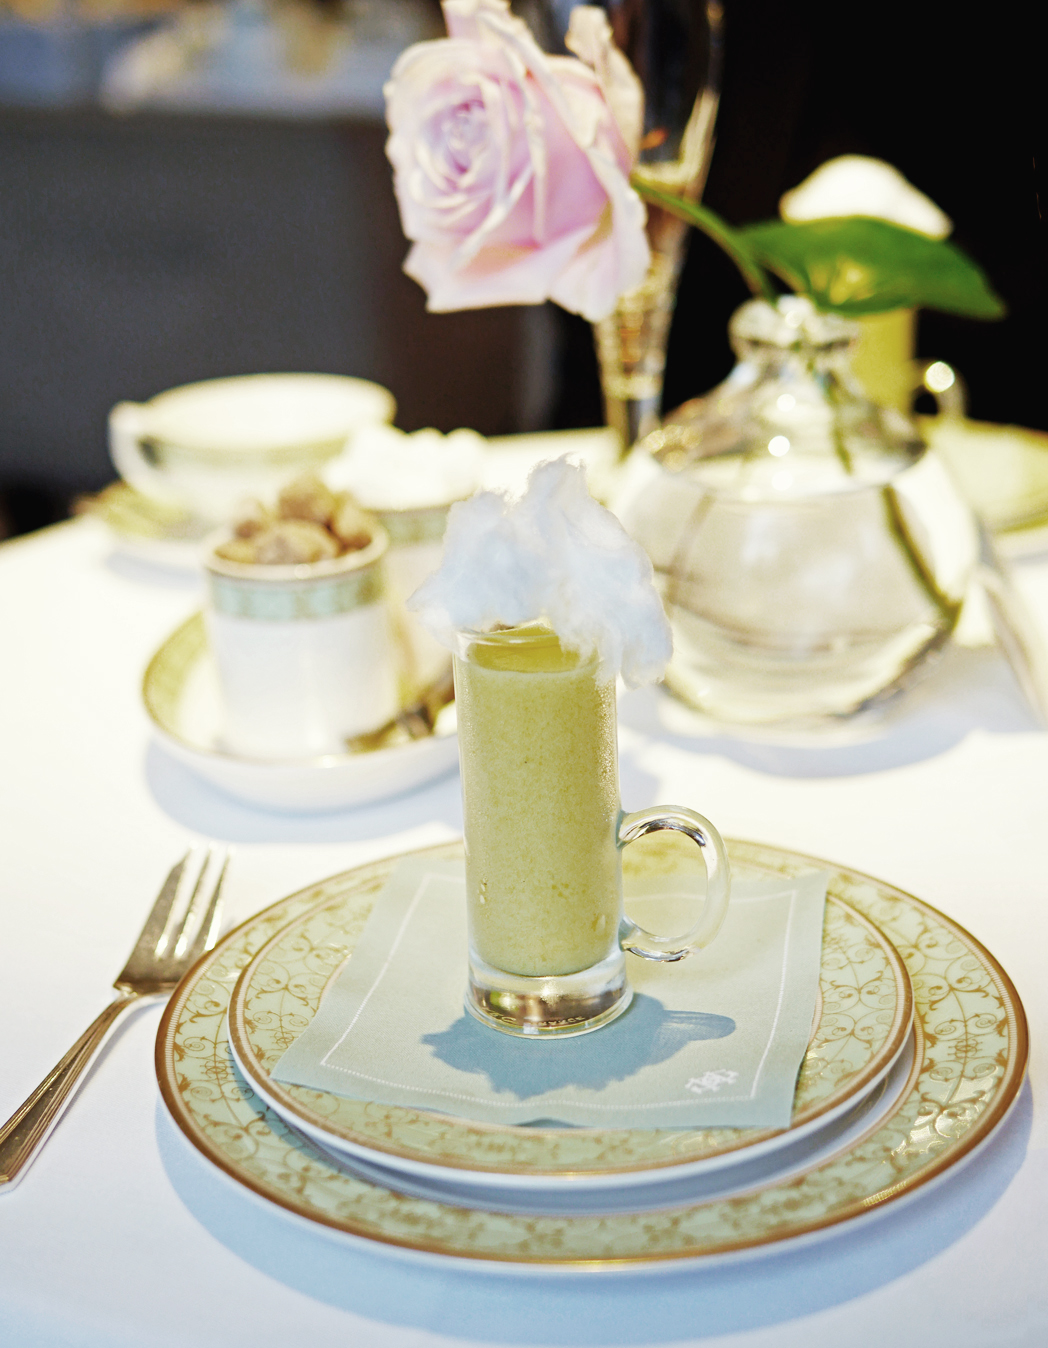 Grosvenor House Hotel - Afternoon Tea palate cleanser